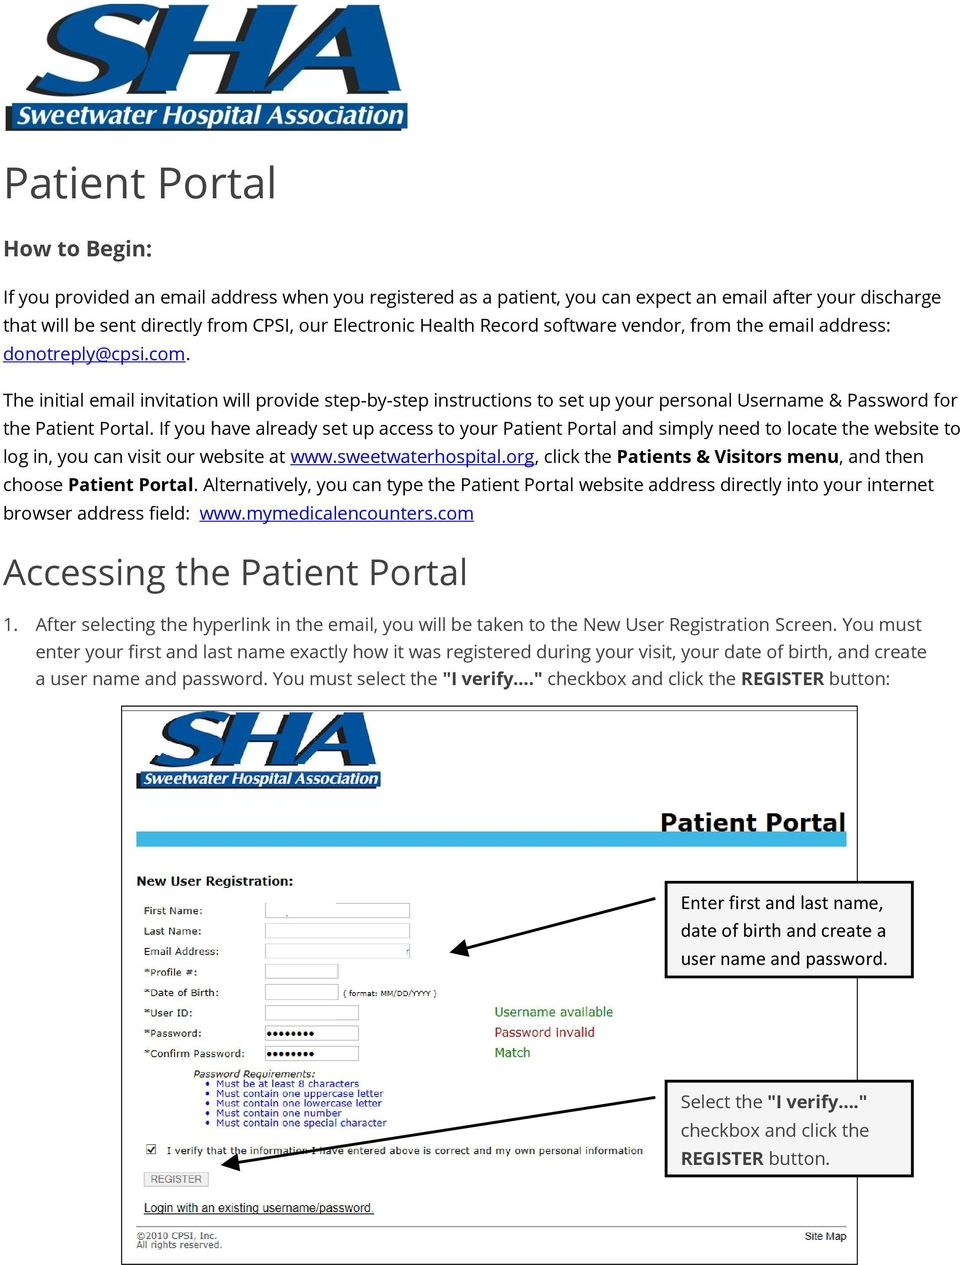 The initial email invitation will provide step-by-step instructions to set up your personal Username & Password for the Patient Portal.